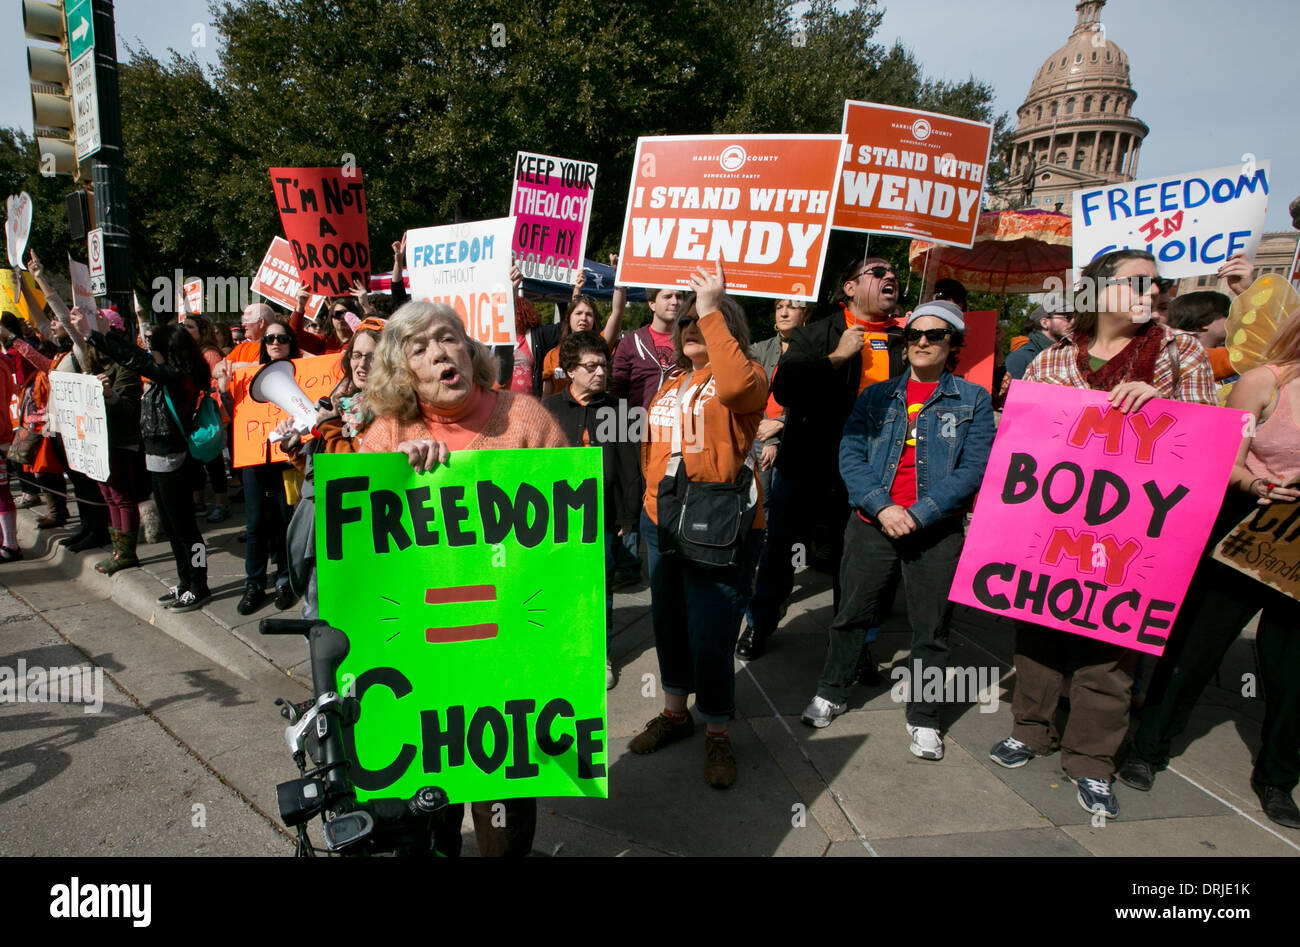 Both pro-choice and pro-life groups rally during the Texas Rally for Life at Texas Capitol. - Stock Image